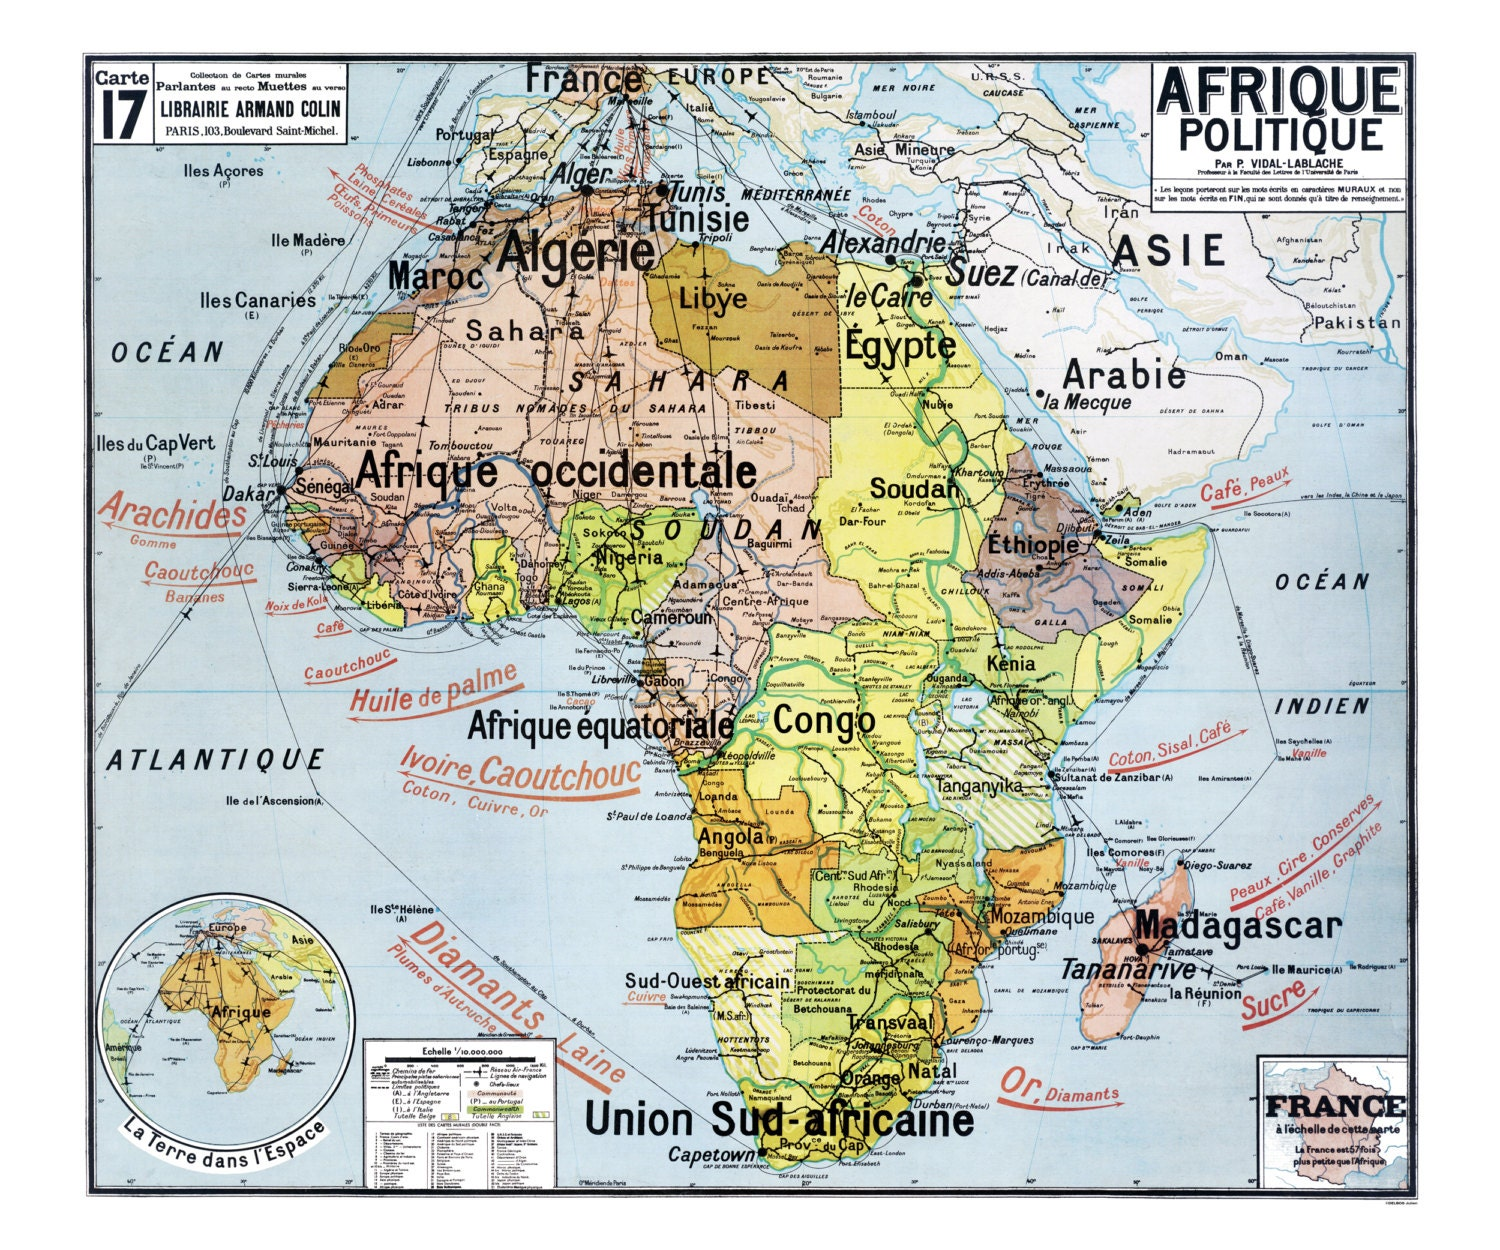 Reproduction of old school Vidal Lablache N 17 Africa political map